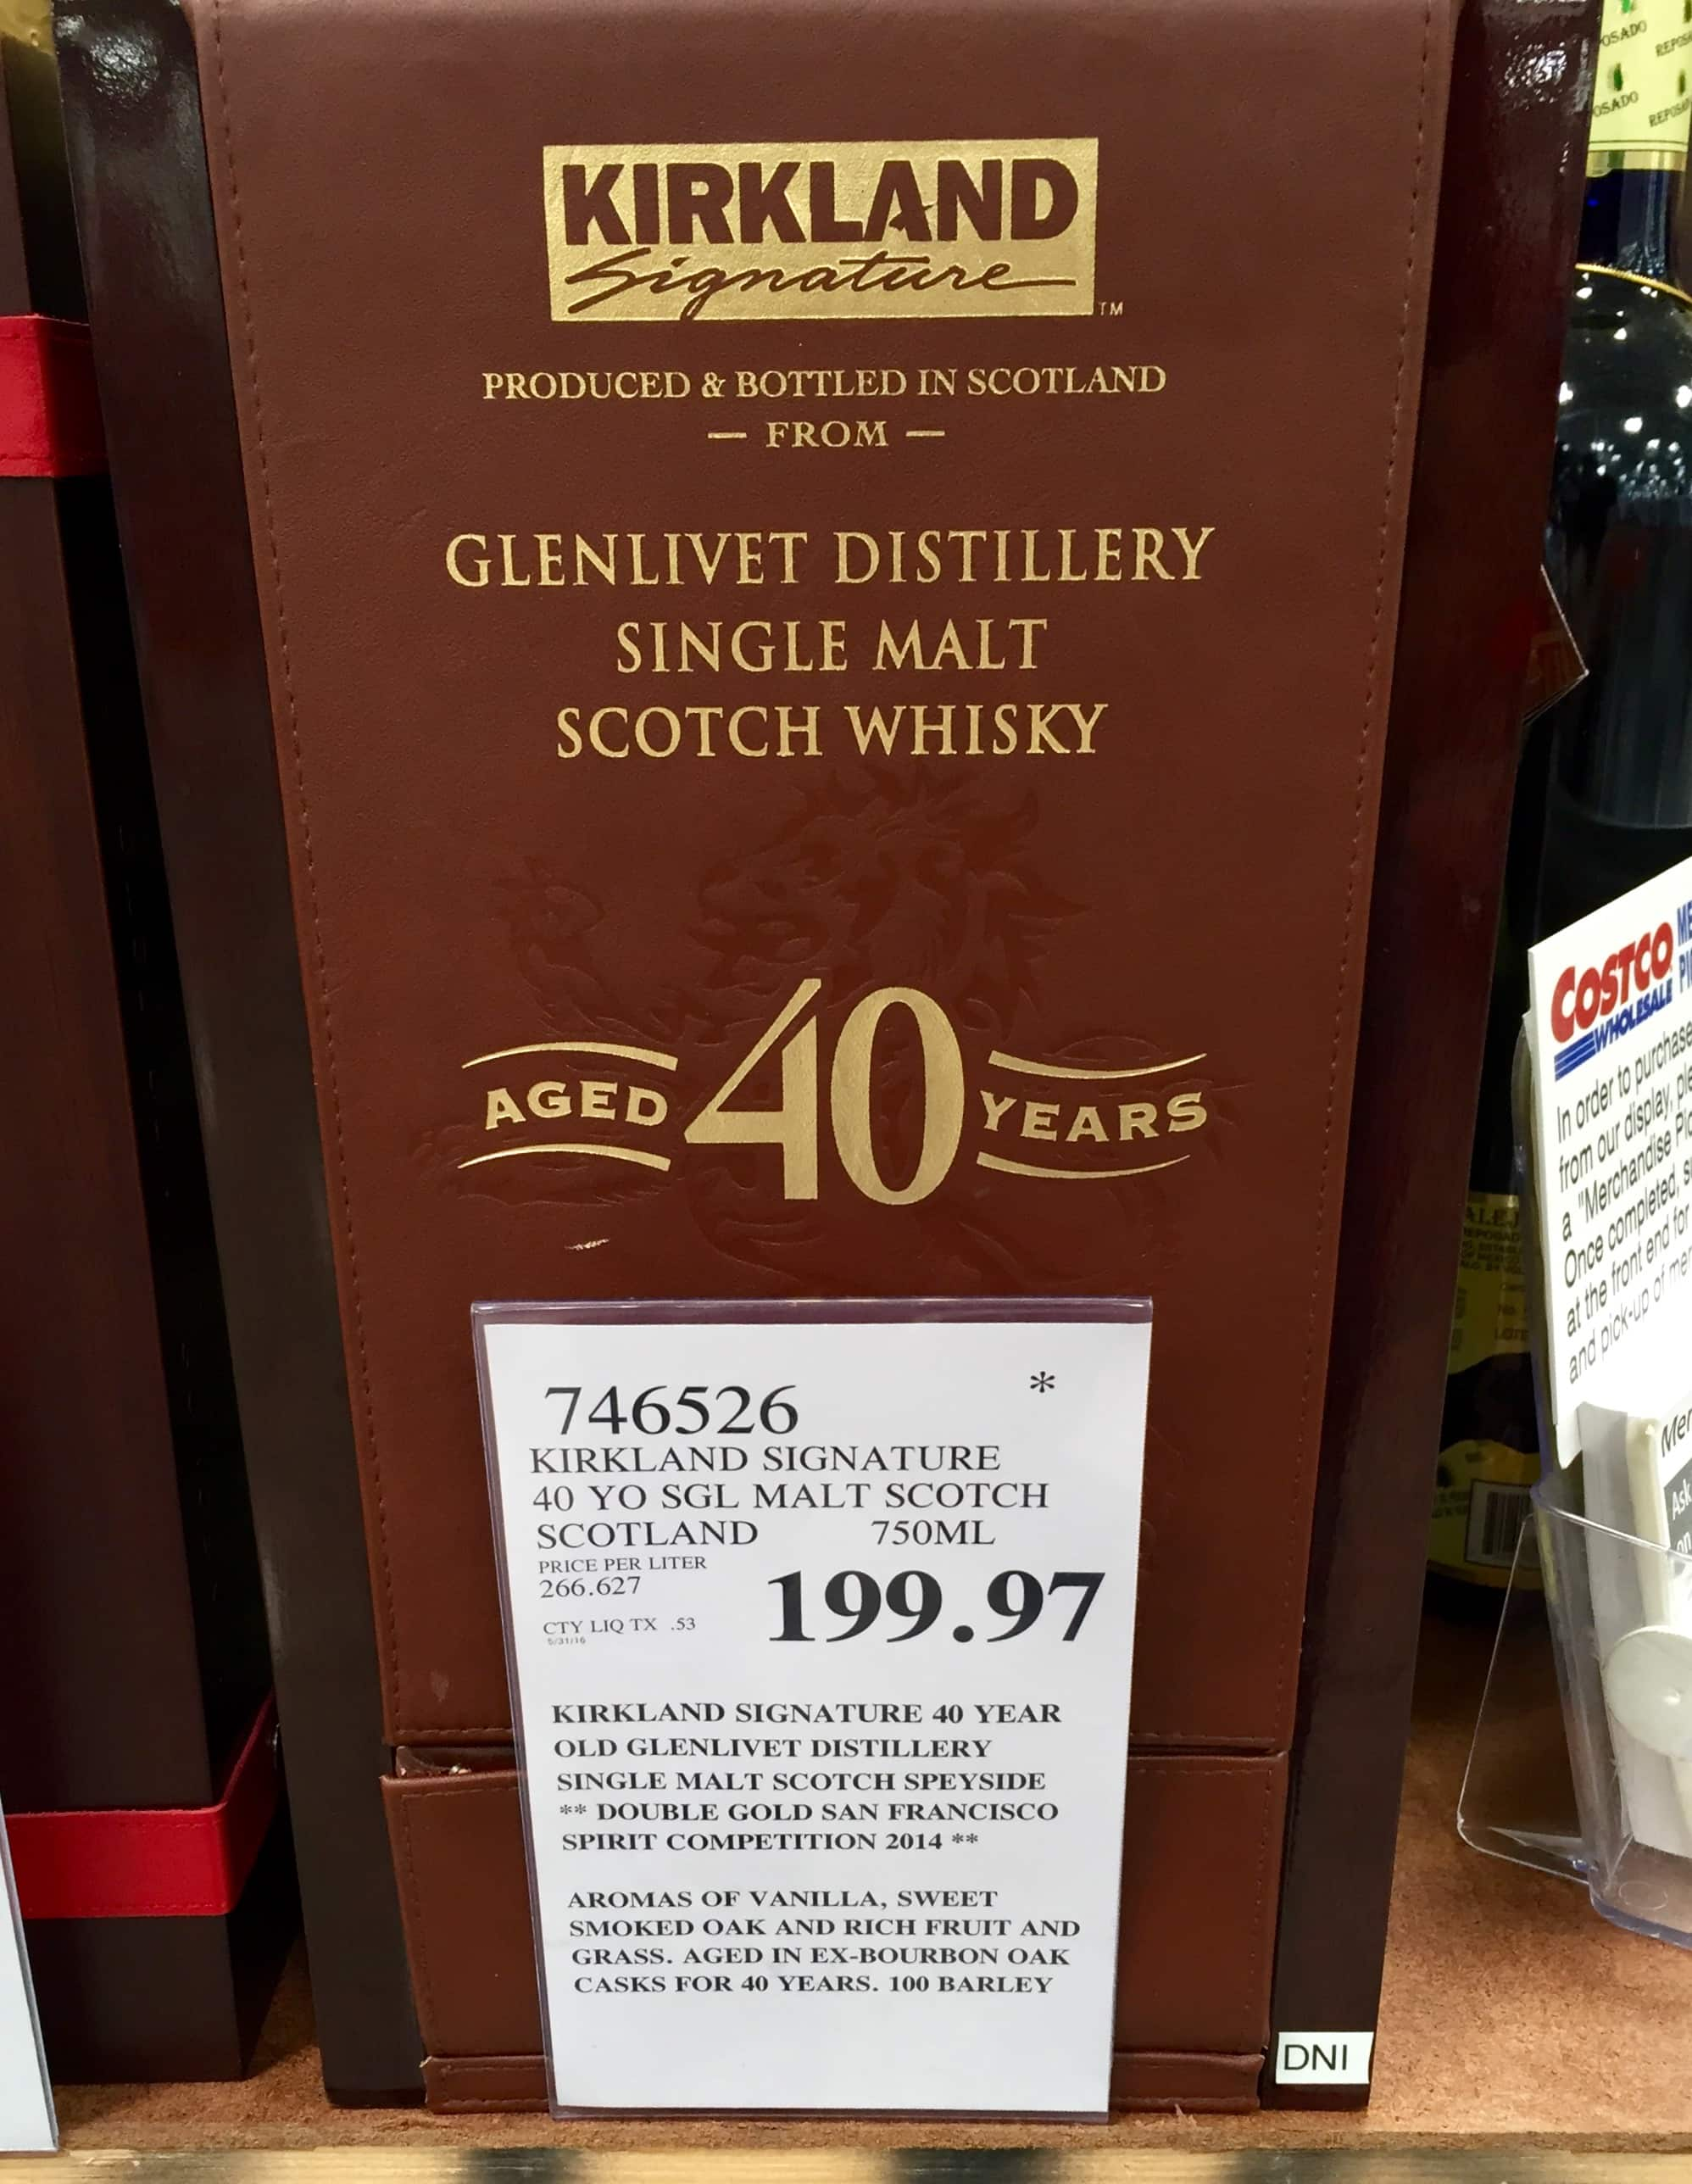 Kirkland Signature™ Glenlivet 40-Year-Old Single Malt Scotch Whisky Costco B&M $199.97 (few states excluded)